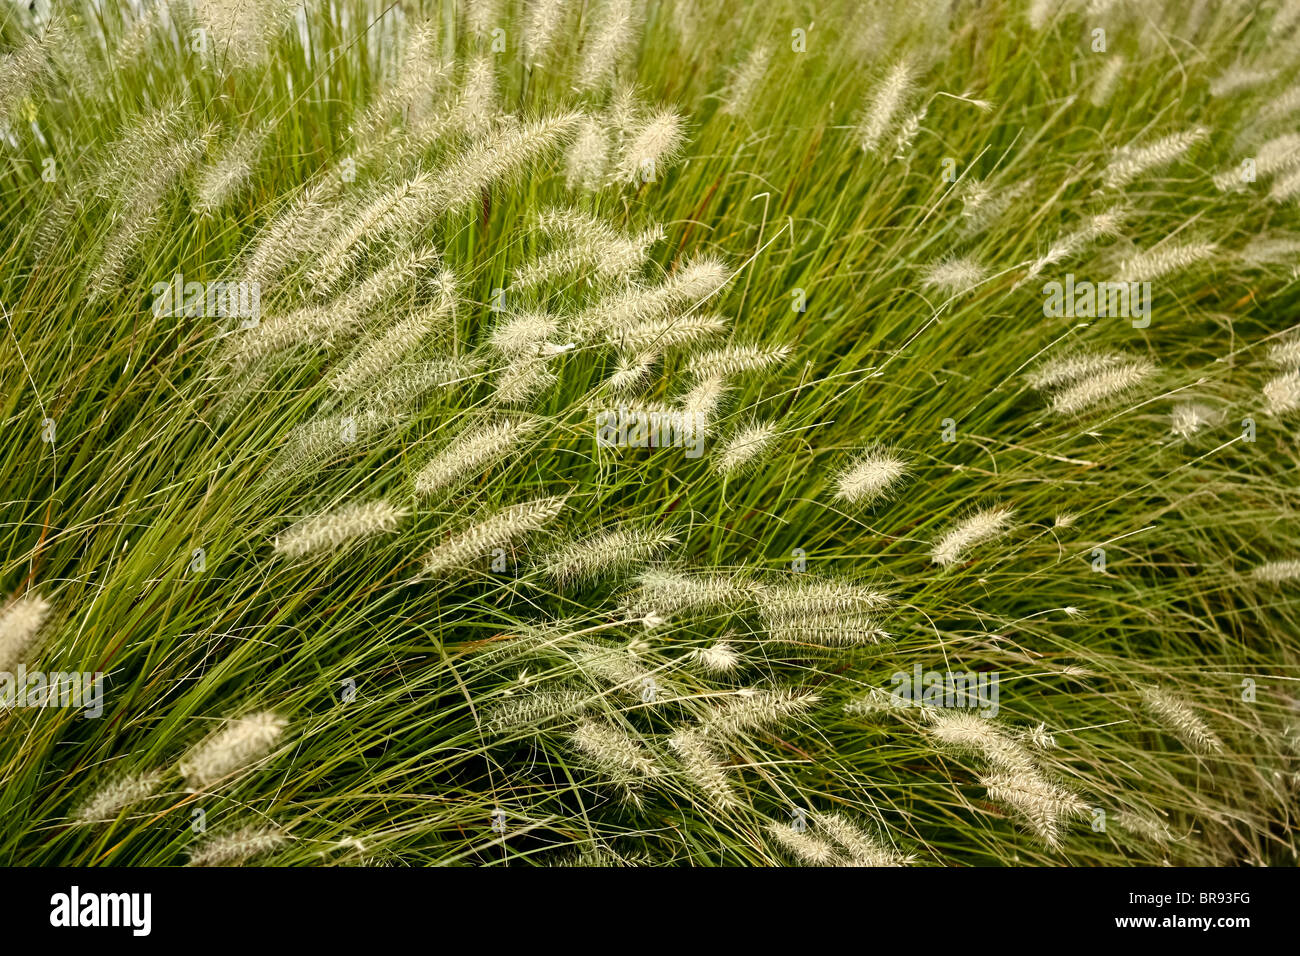 tall grass windy - Stock Image